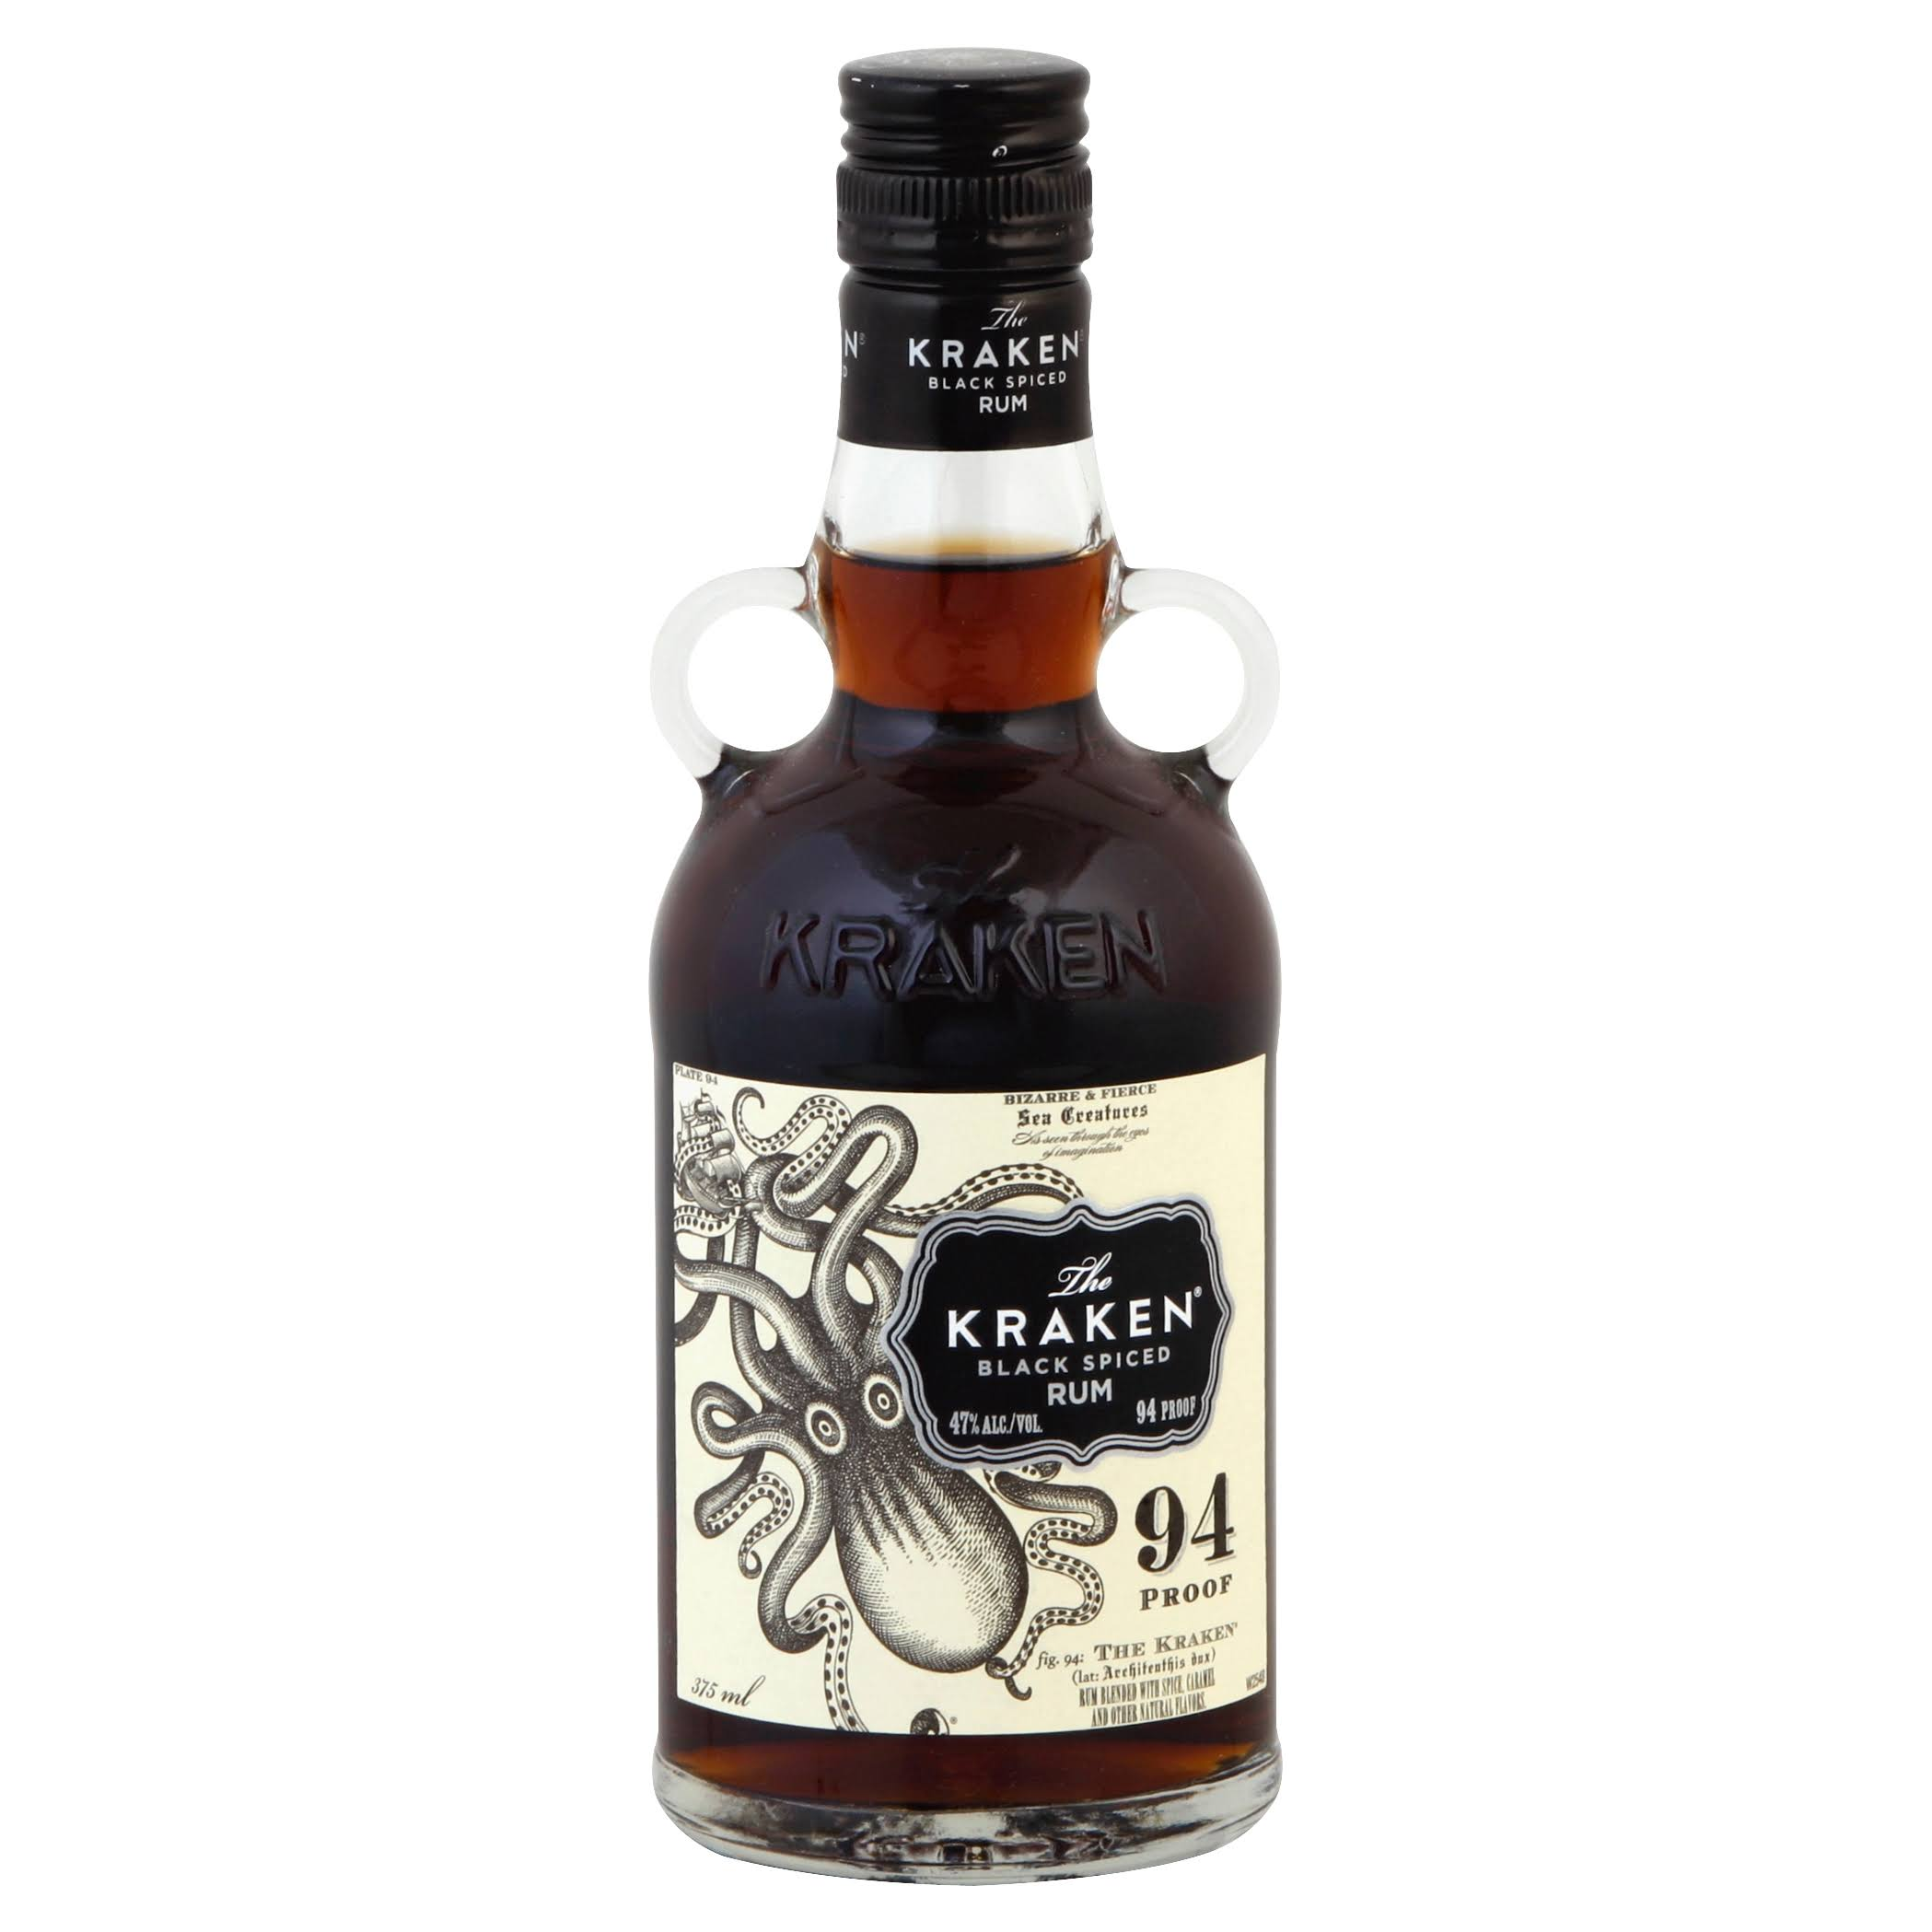 The Kraken Black Spiced Rum - 375 ml bottle